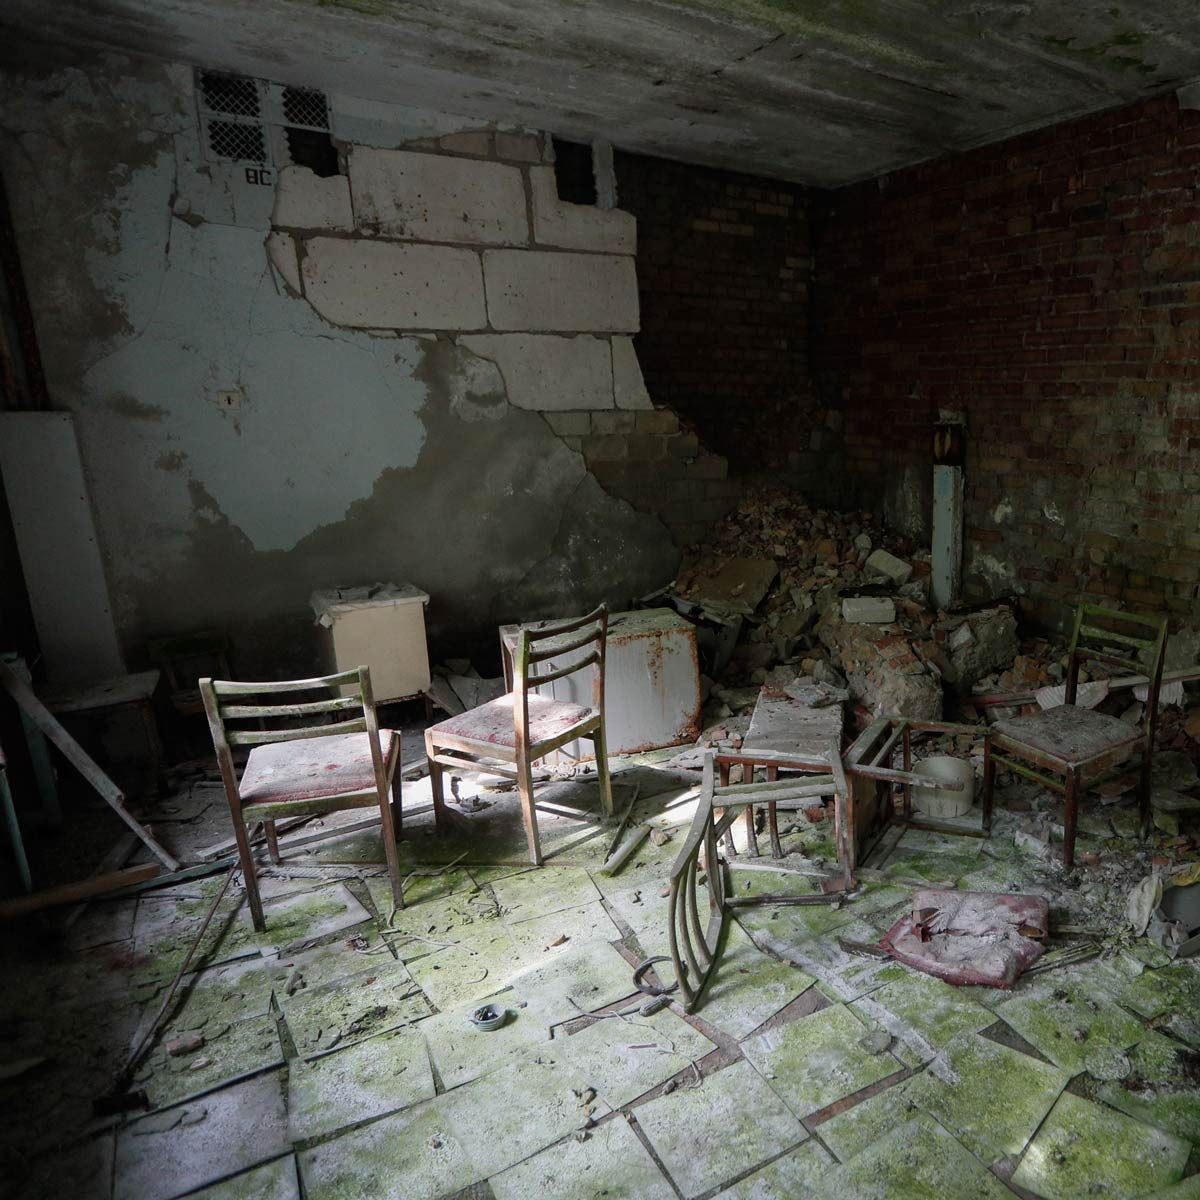 Abandoned-hospital-in-Chernobyl-33-years-after-Nuclear-explosion